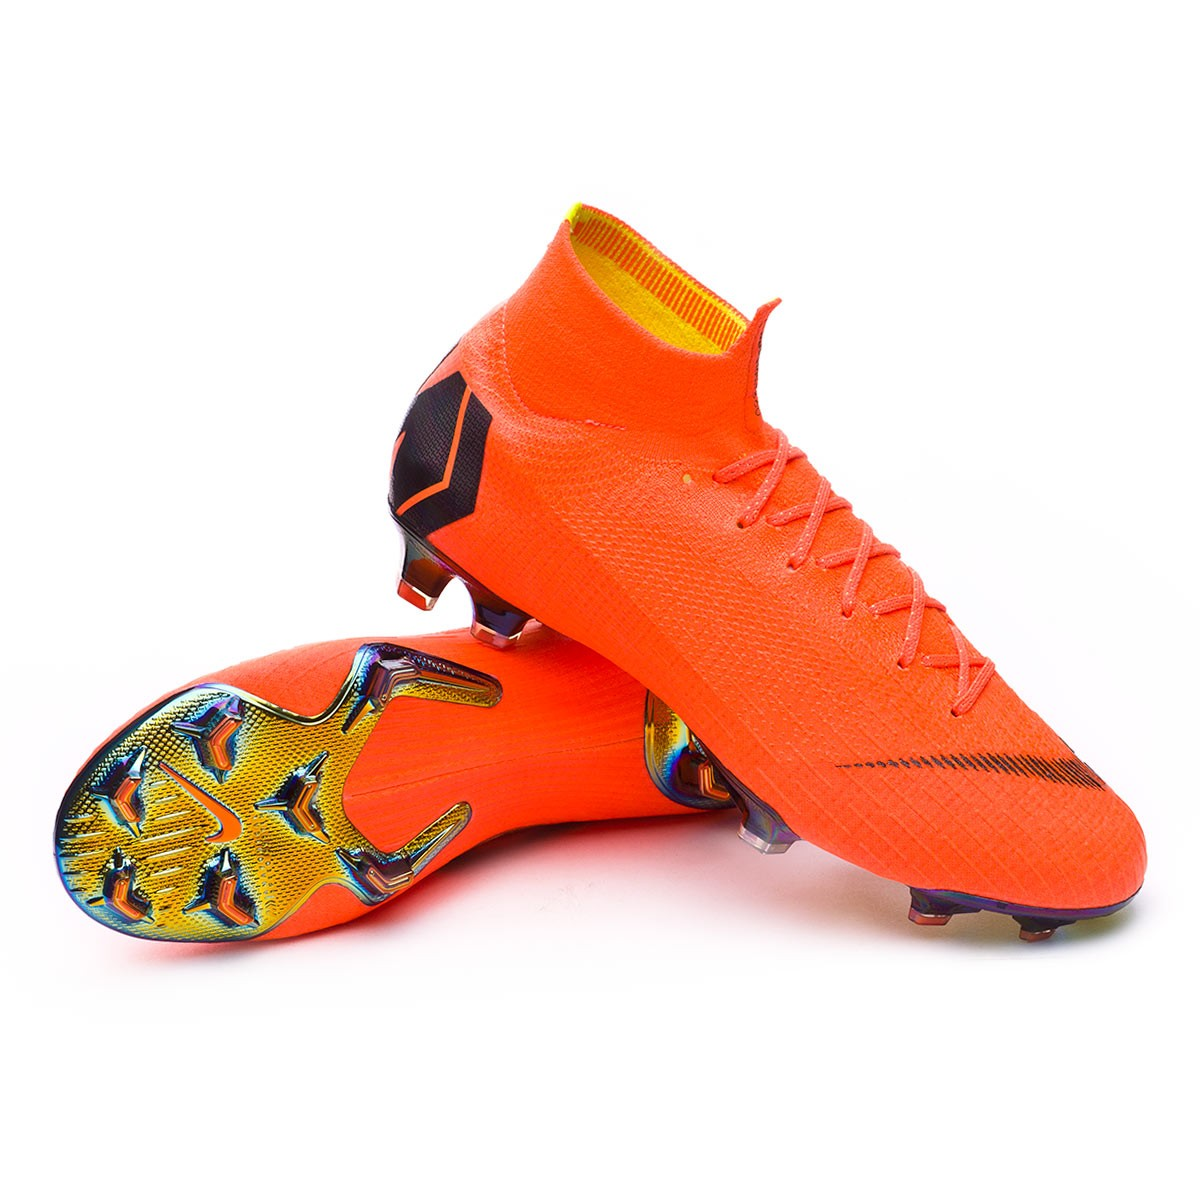 Boot Nike Mercurial Superfly VI Elite FG Total orange-Black-Volt - Football  store Fútbol Emotion 45ea4c383a65